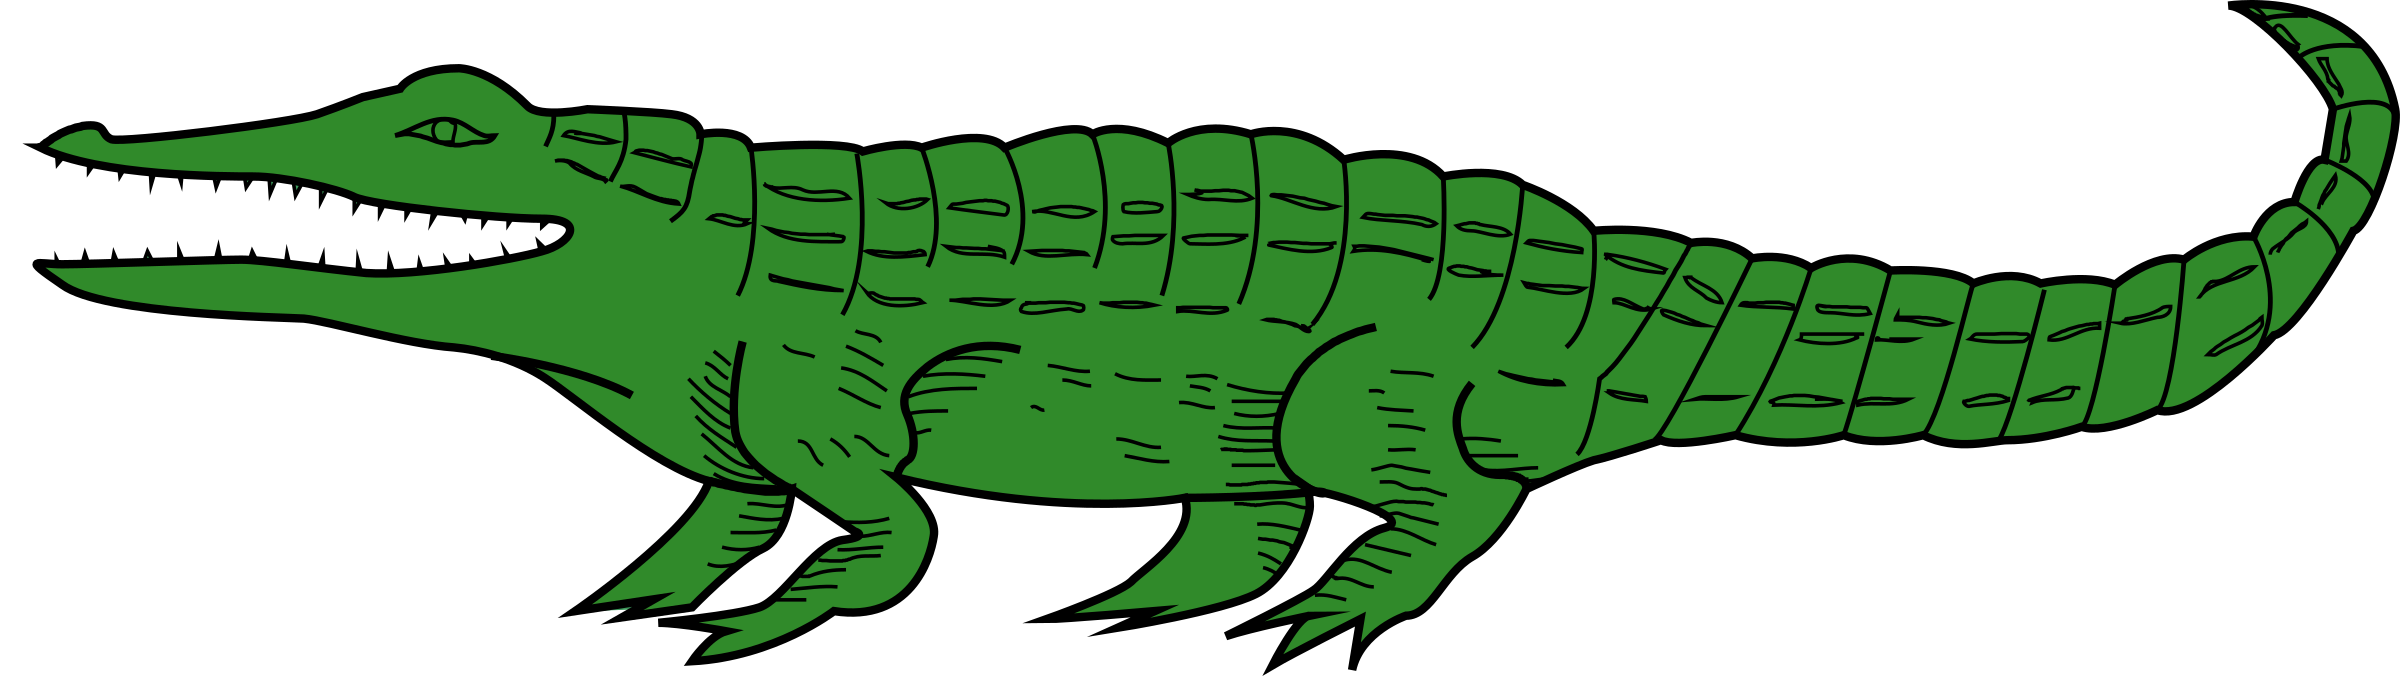 image black and white library Crocodile clipart. Big image png.